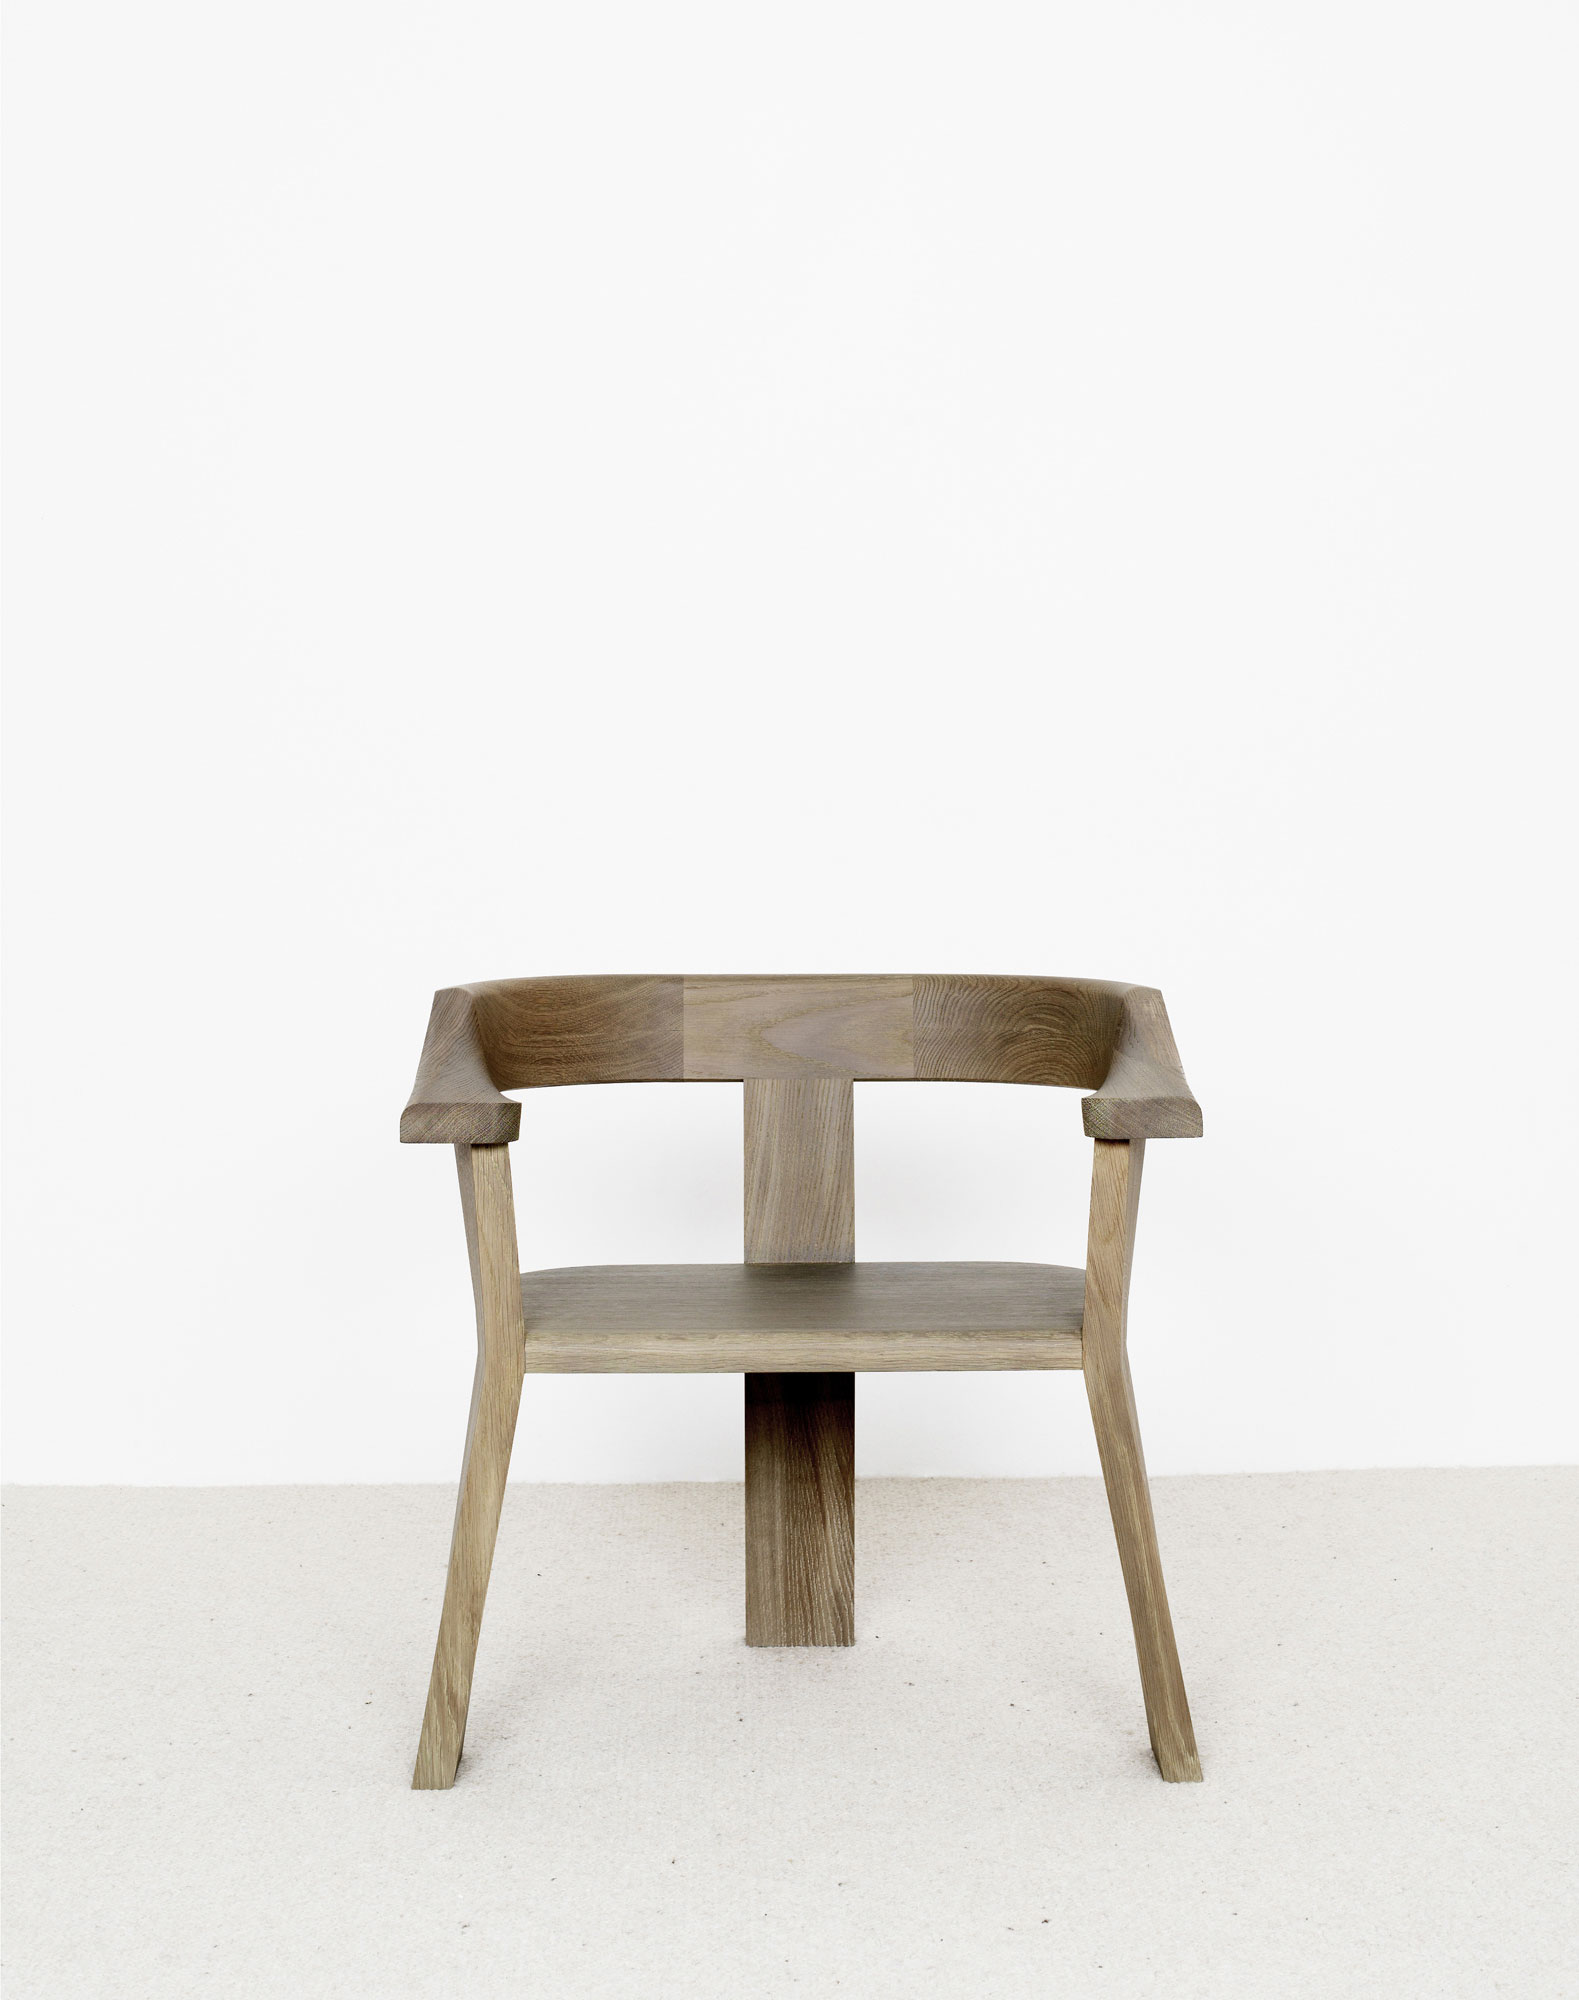 Fauteuil Iwi - Christophe Delcourt